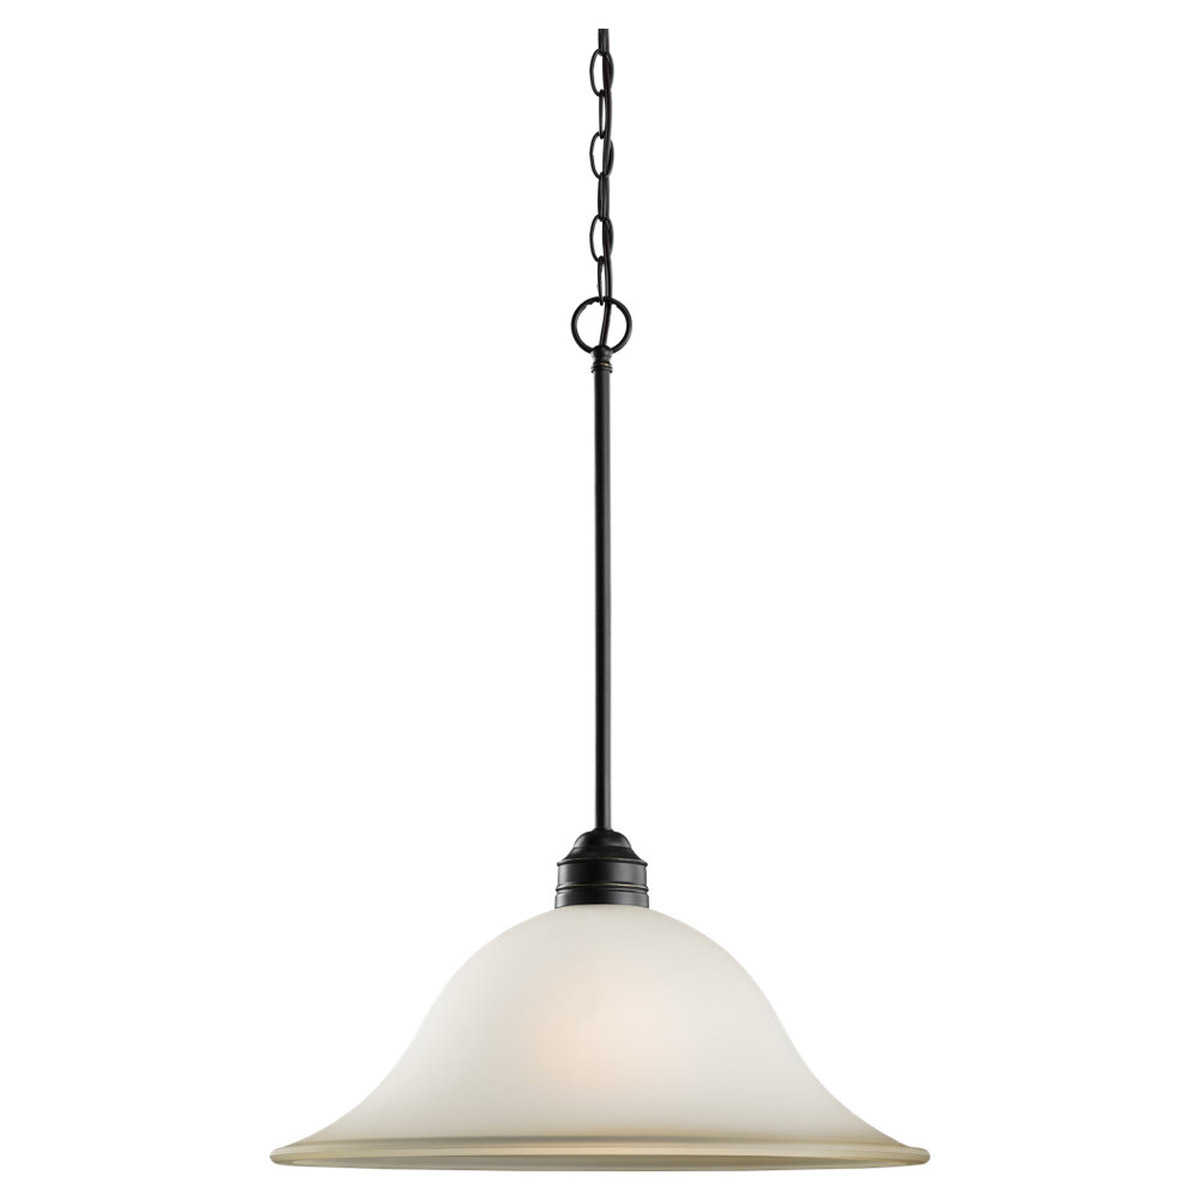 Sea Gull 65850BLE-782 Gladstone 1 Light 18 inch Heirloom Bronze Pendant Ceiling Light in Smokey Amber Glass, Fluorescent photo